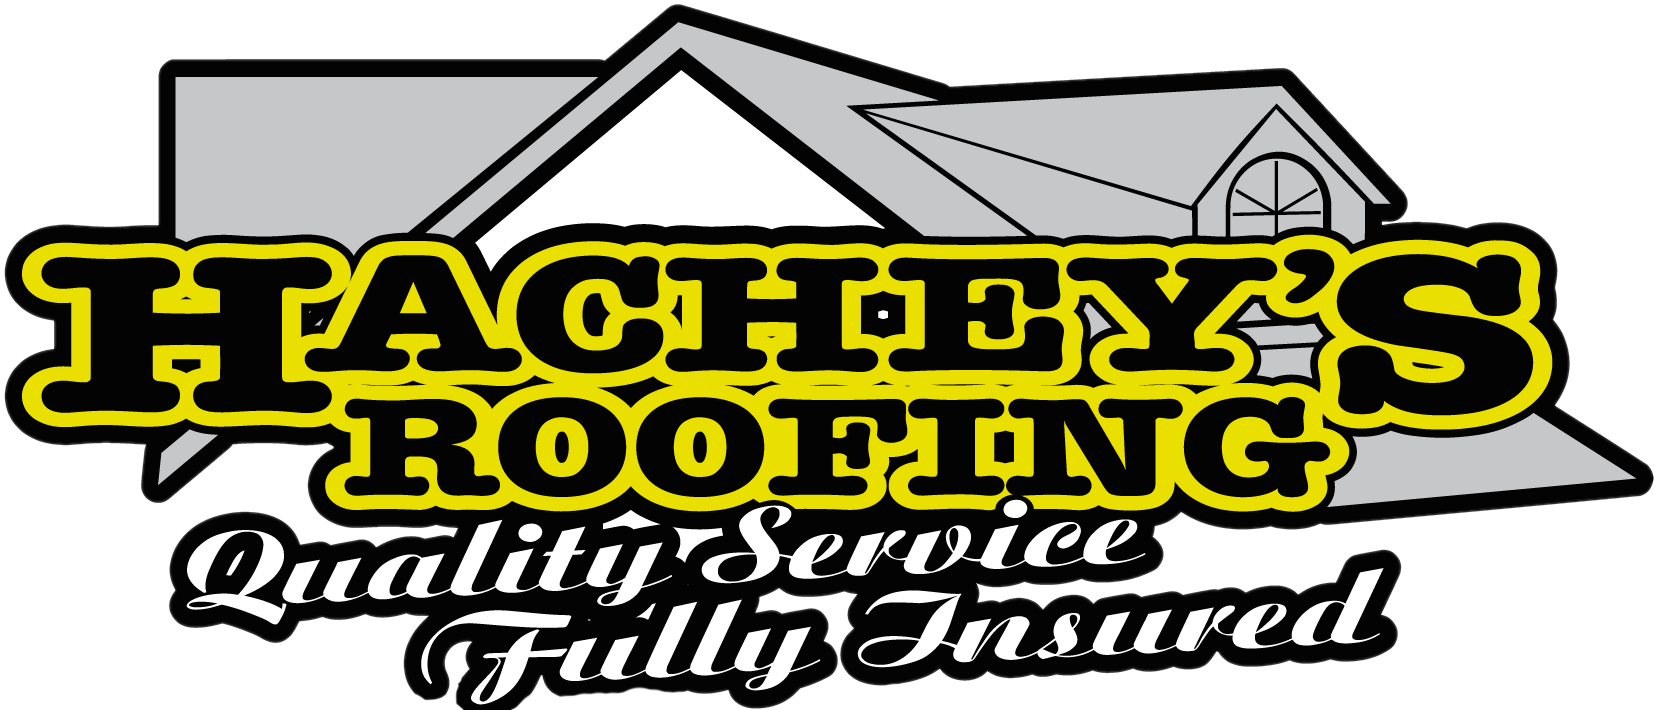 Hachey's Roofing